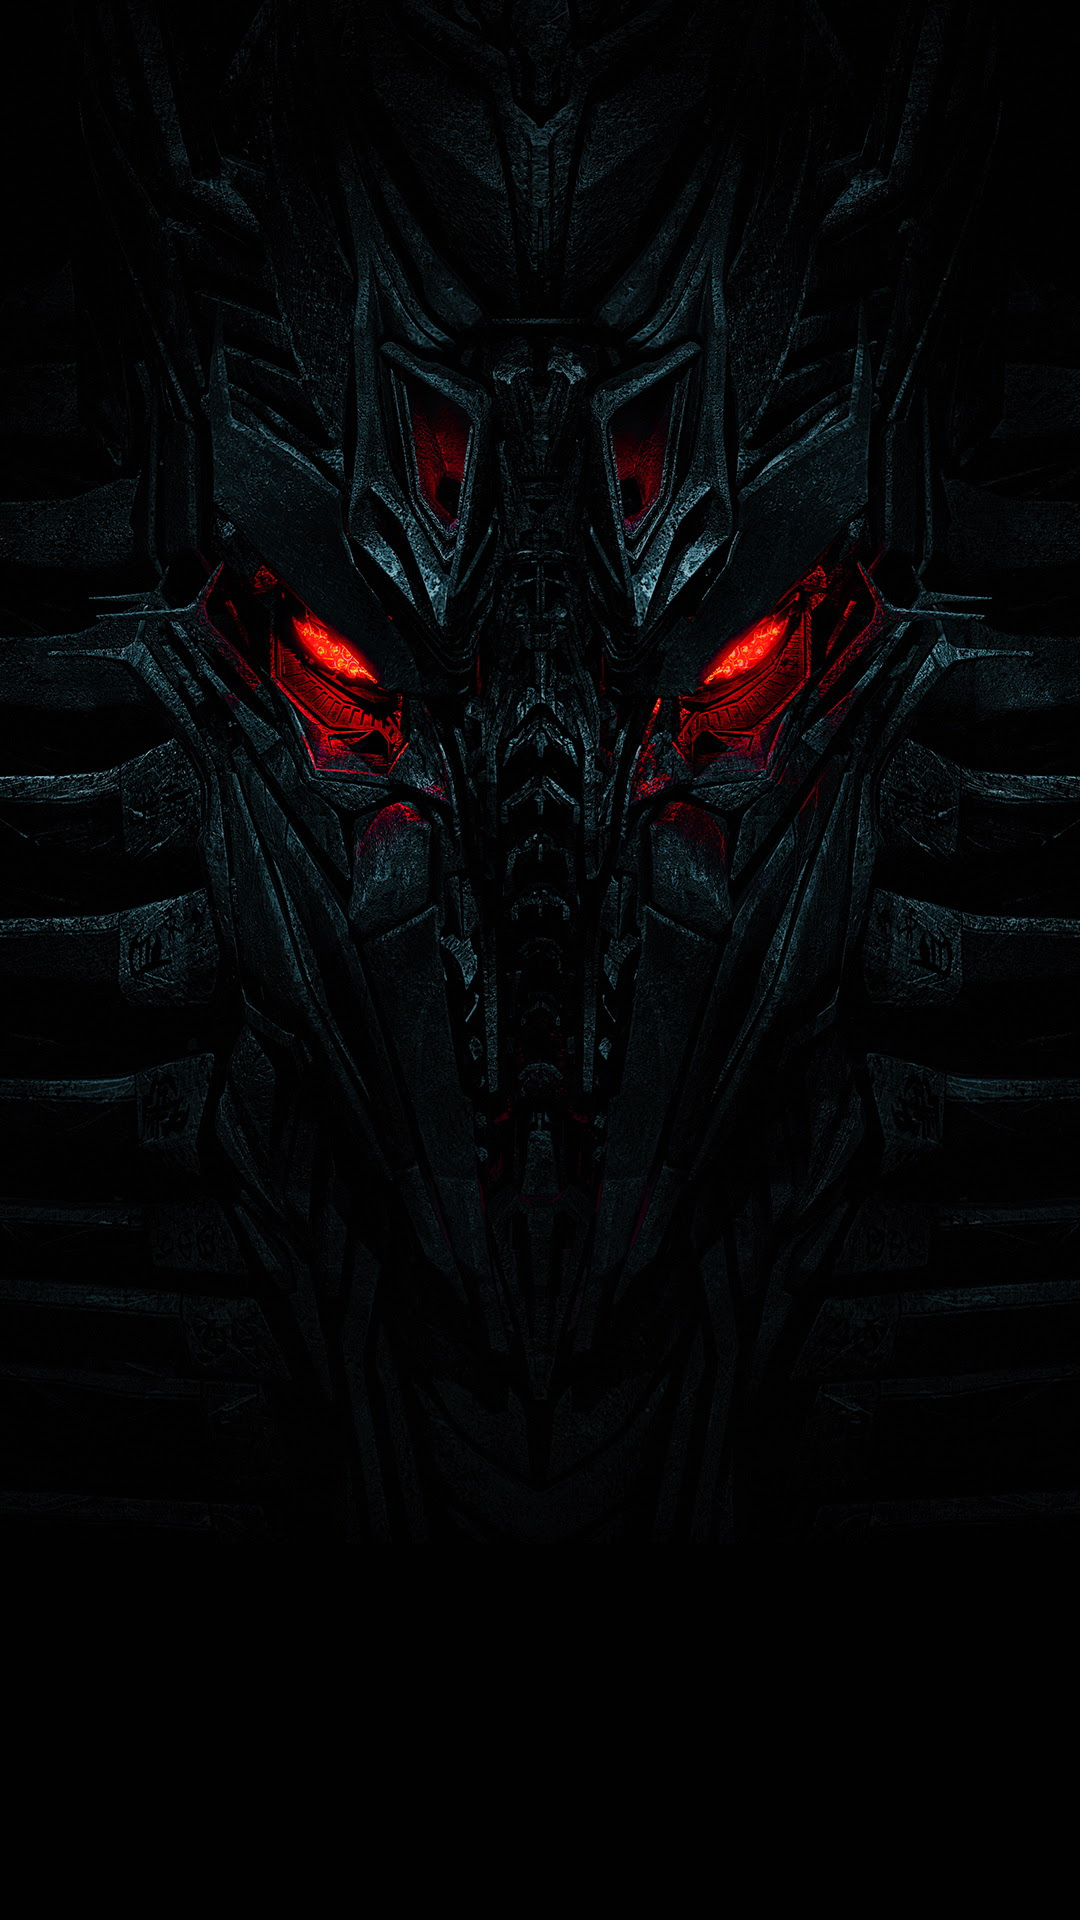 Transformers Revenge Of The Fallen Best Htc One Wallpapers Free